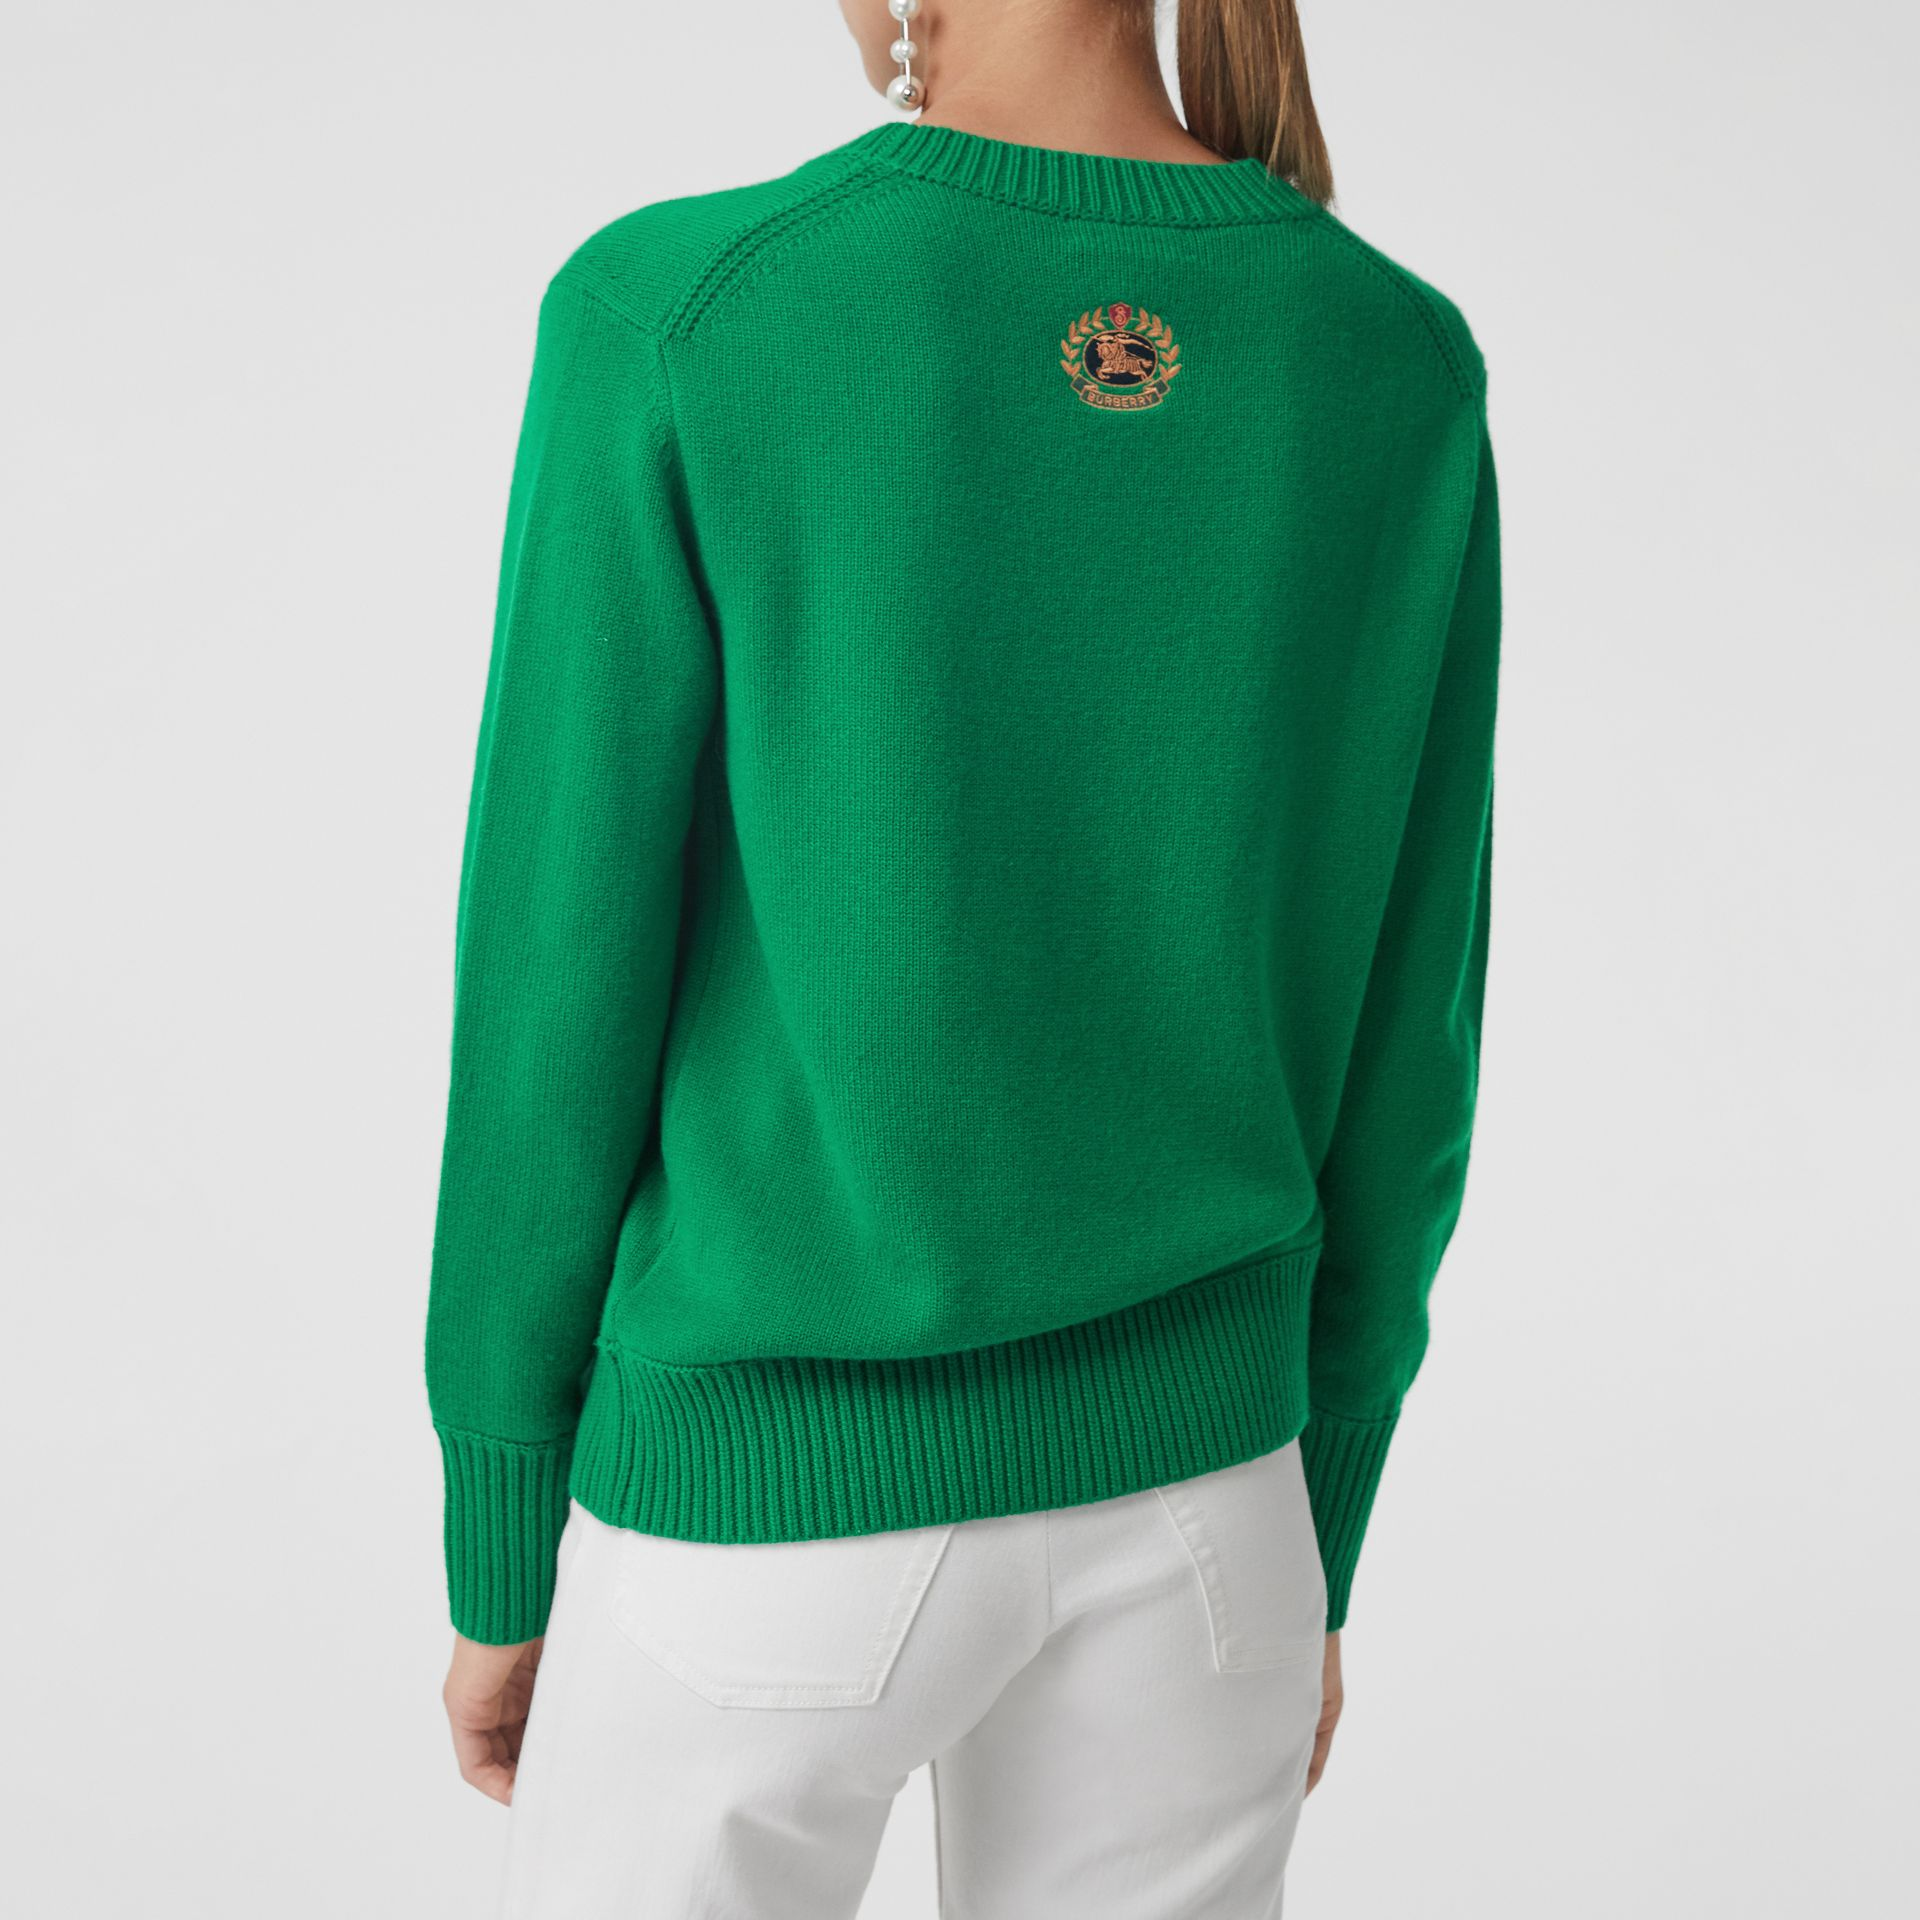 Archive Logo Appliqué Cashmere Sweater in Vibrant Green - Women | Burberry Hong Kong - gallery image 2